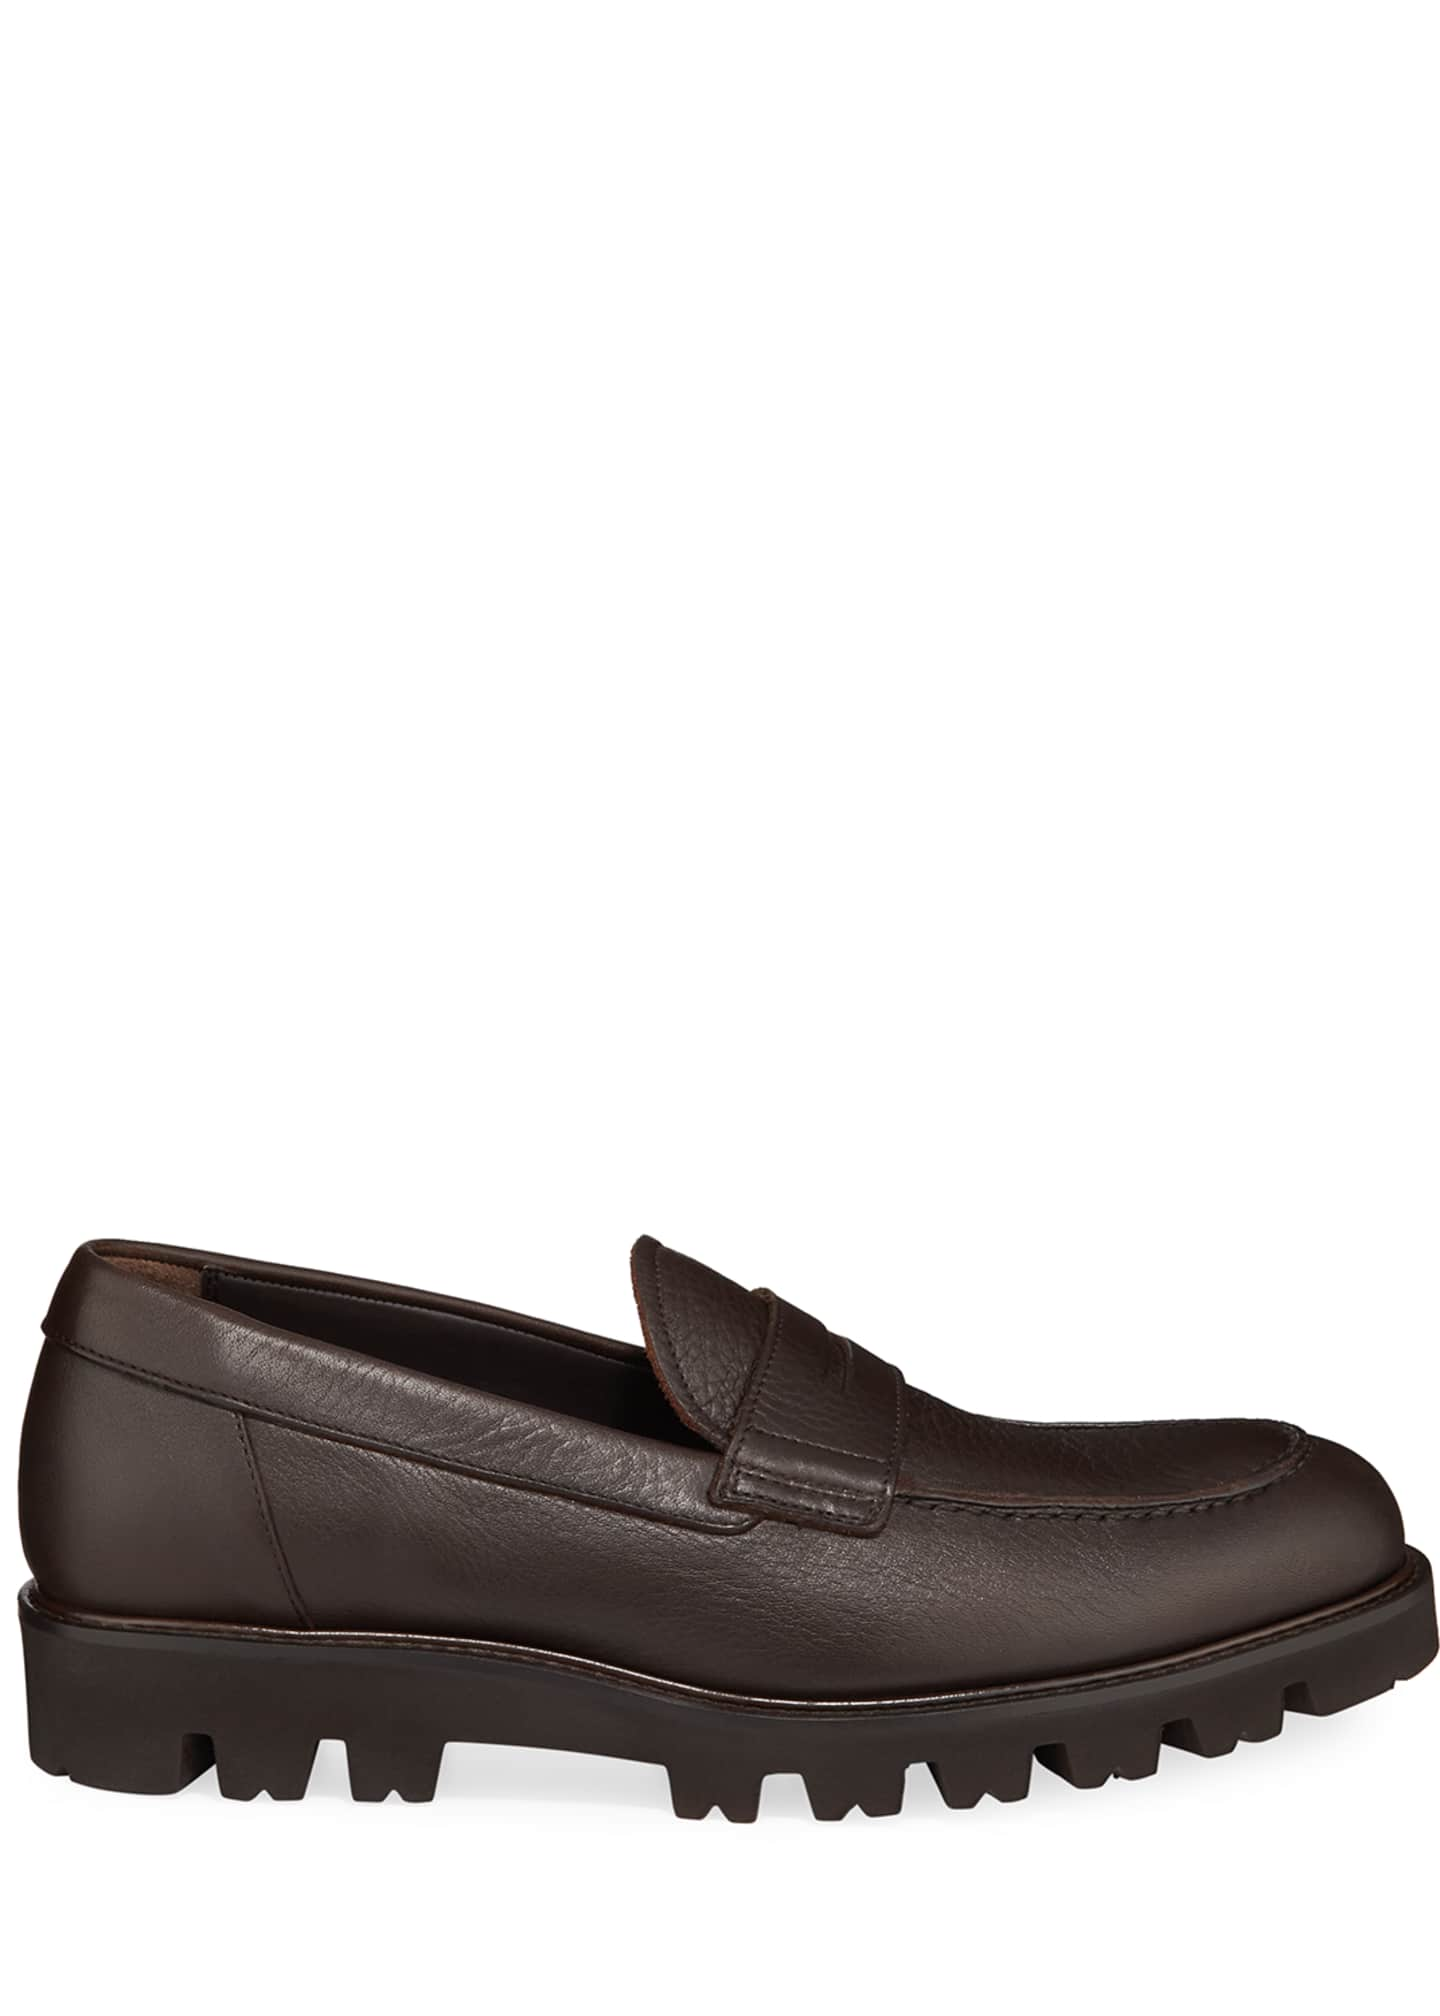 Image 3 of 5: Men's Comrade Leather Lug-Sole Penny Loafers